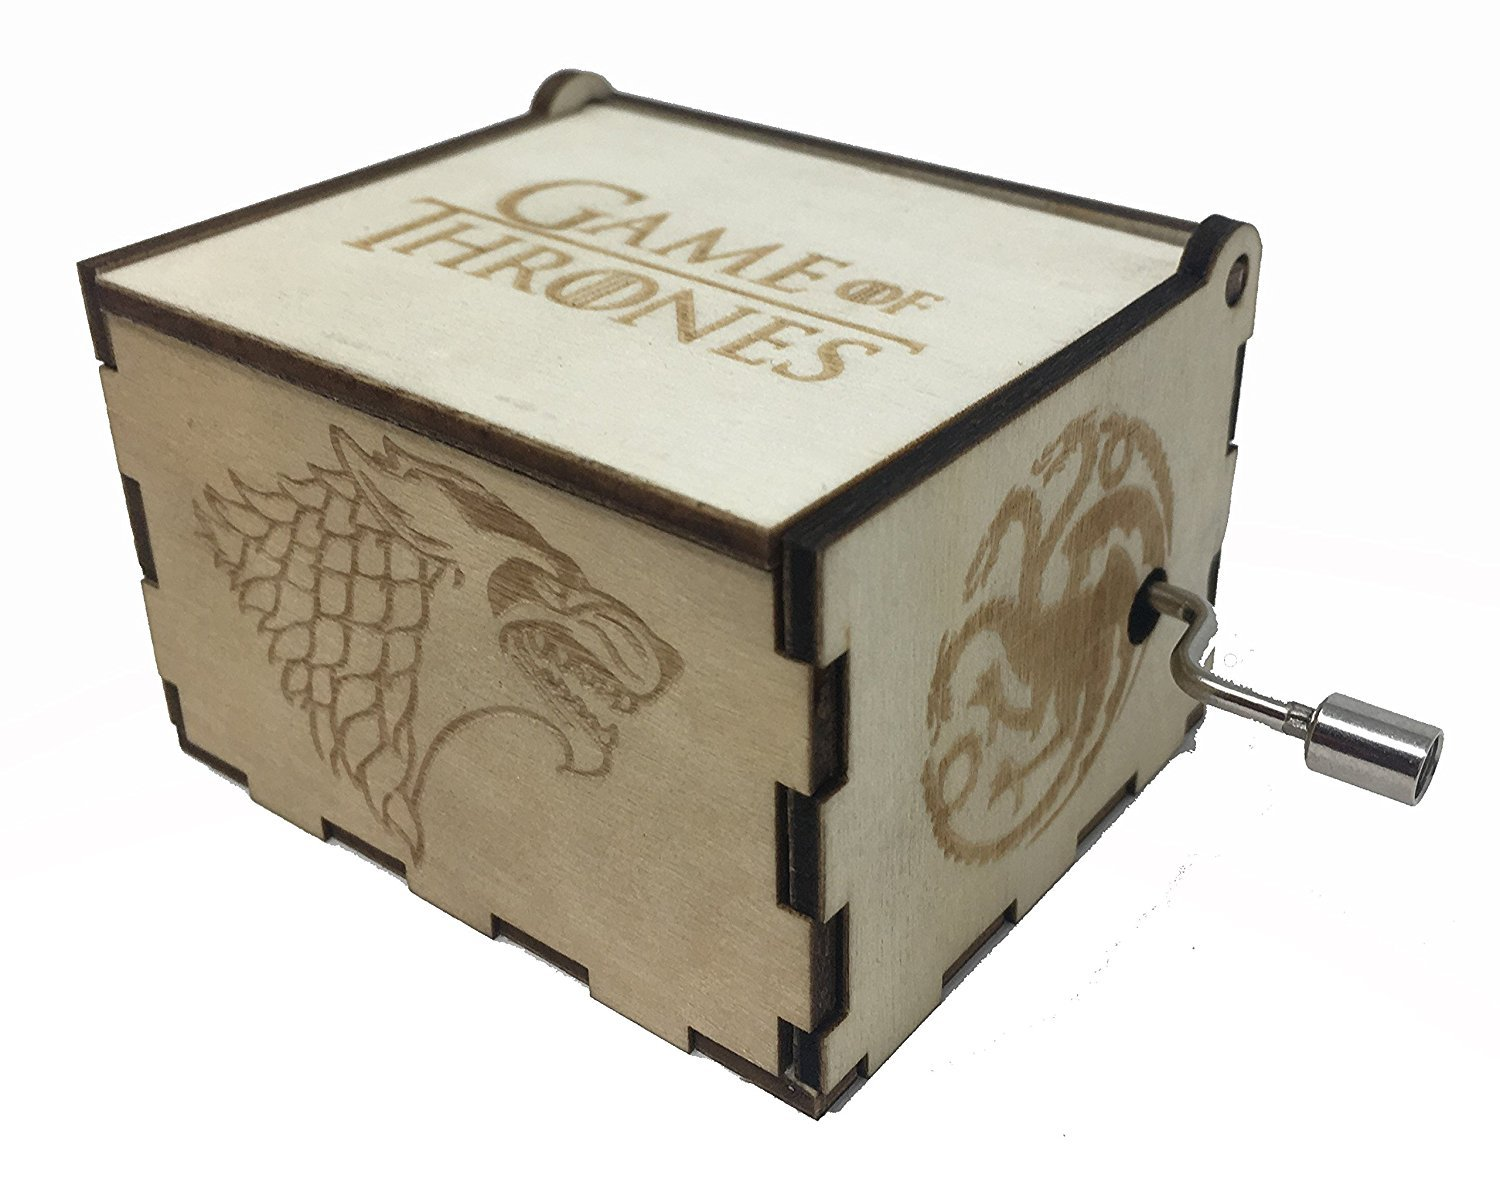 ASVP Shop Game of Thrones Music Box Wooden Custom Engraved Gift Wood Musical Box